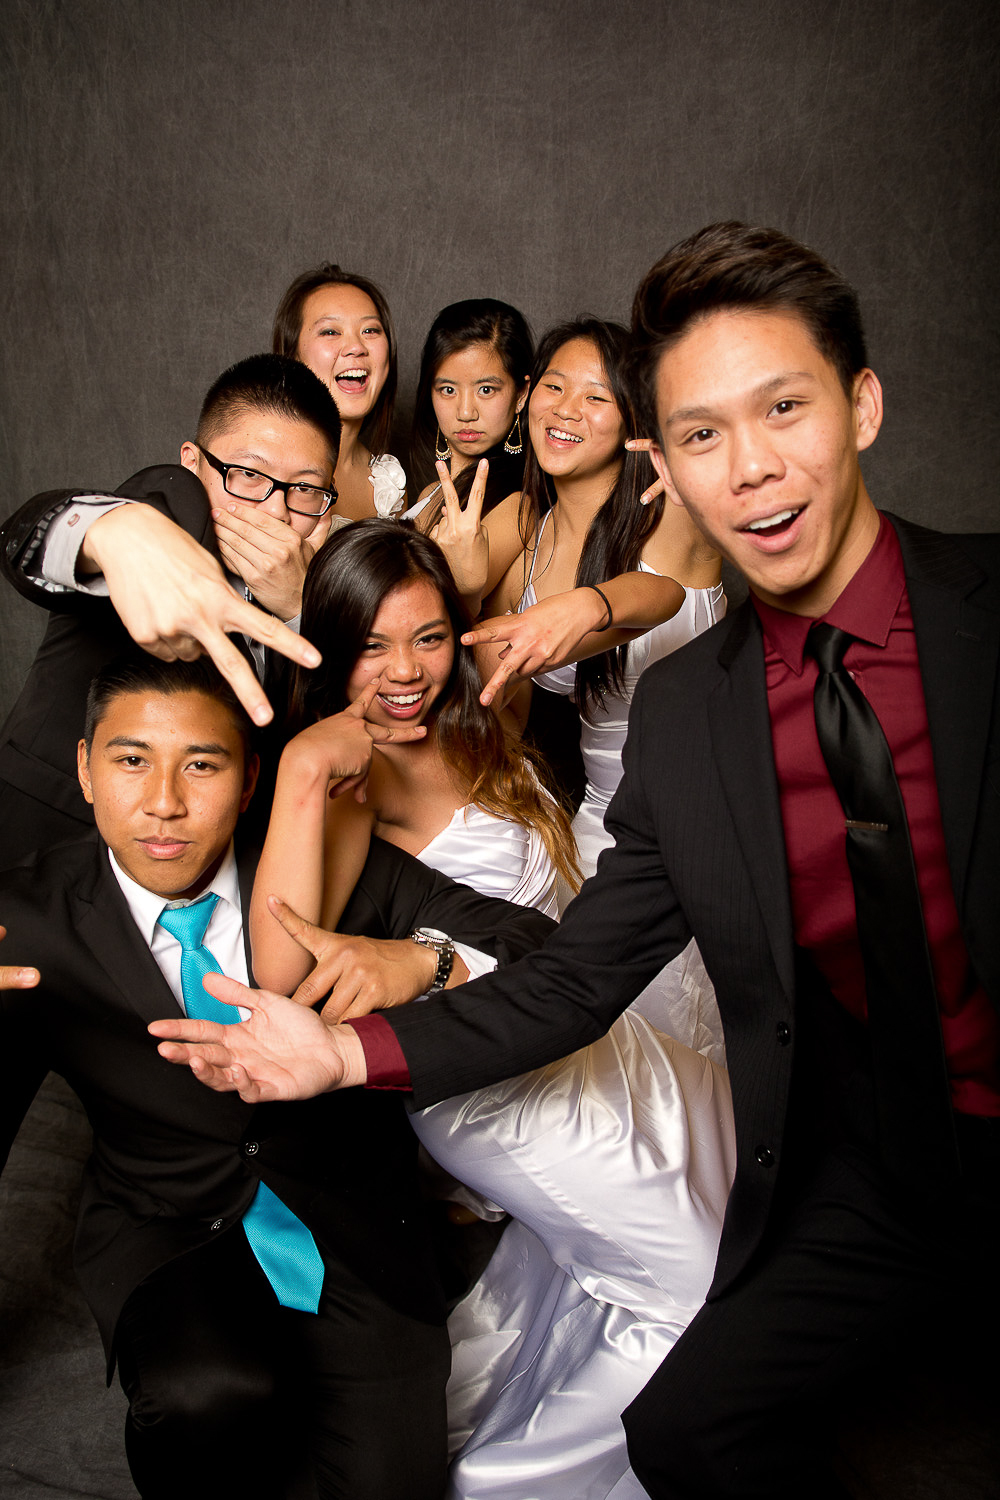 42-Bryan-Miraflor-Photography-Chi-Delta-Theta-UCLA-Zeta-Class-Formal-Presentation-20140125-0245.jpg